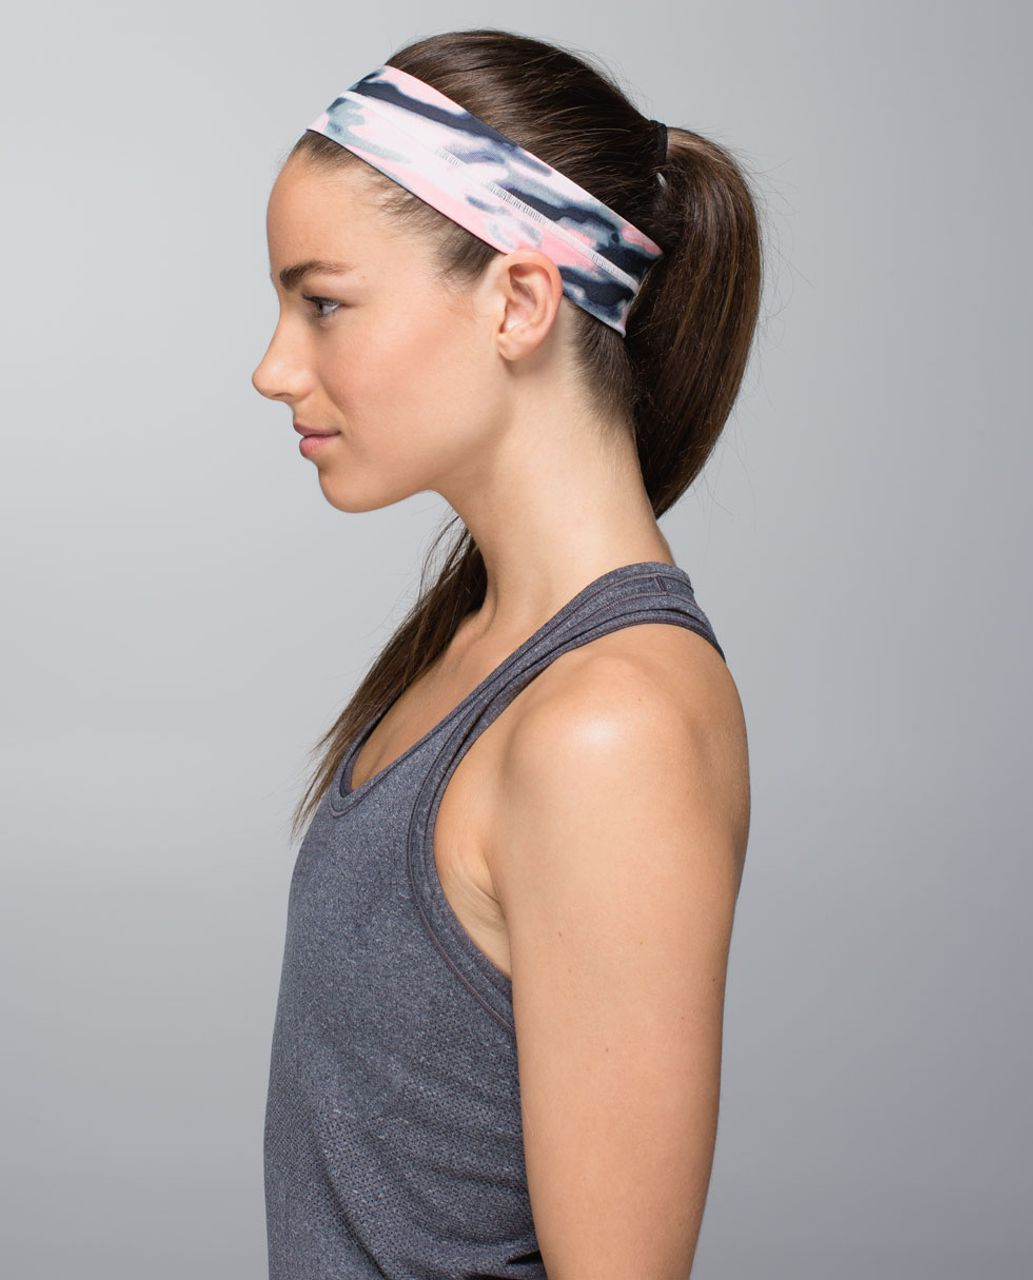 Lululemon Fly Away Tamer Headband - Wamo Camo Barely Pink